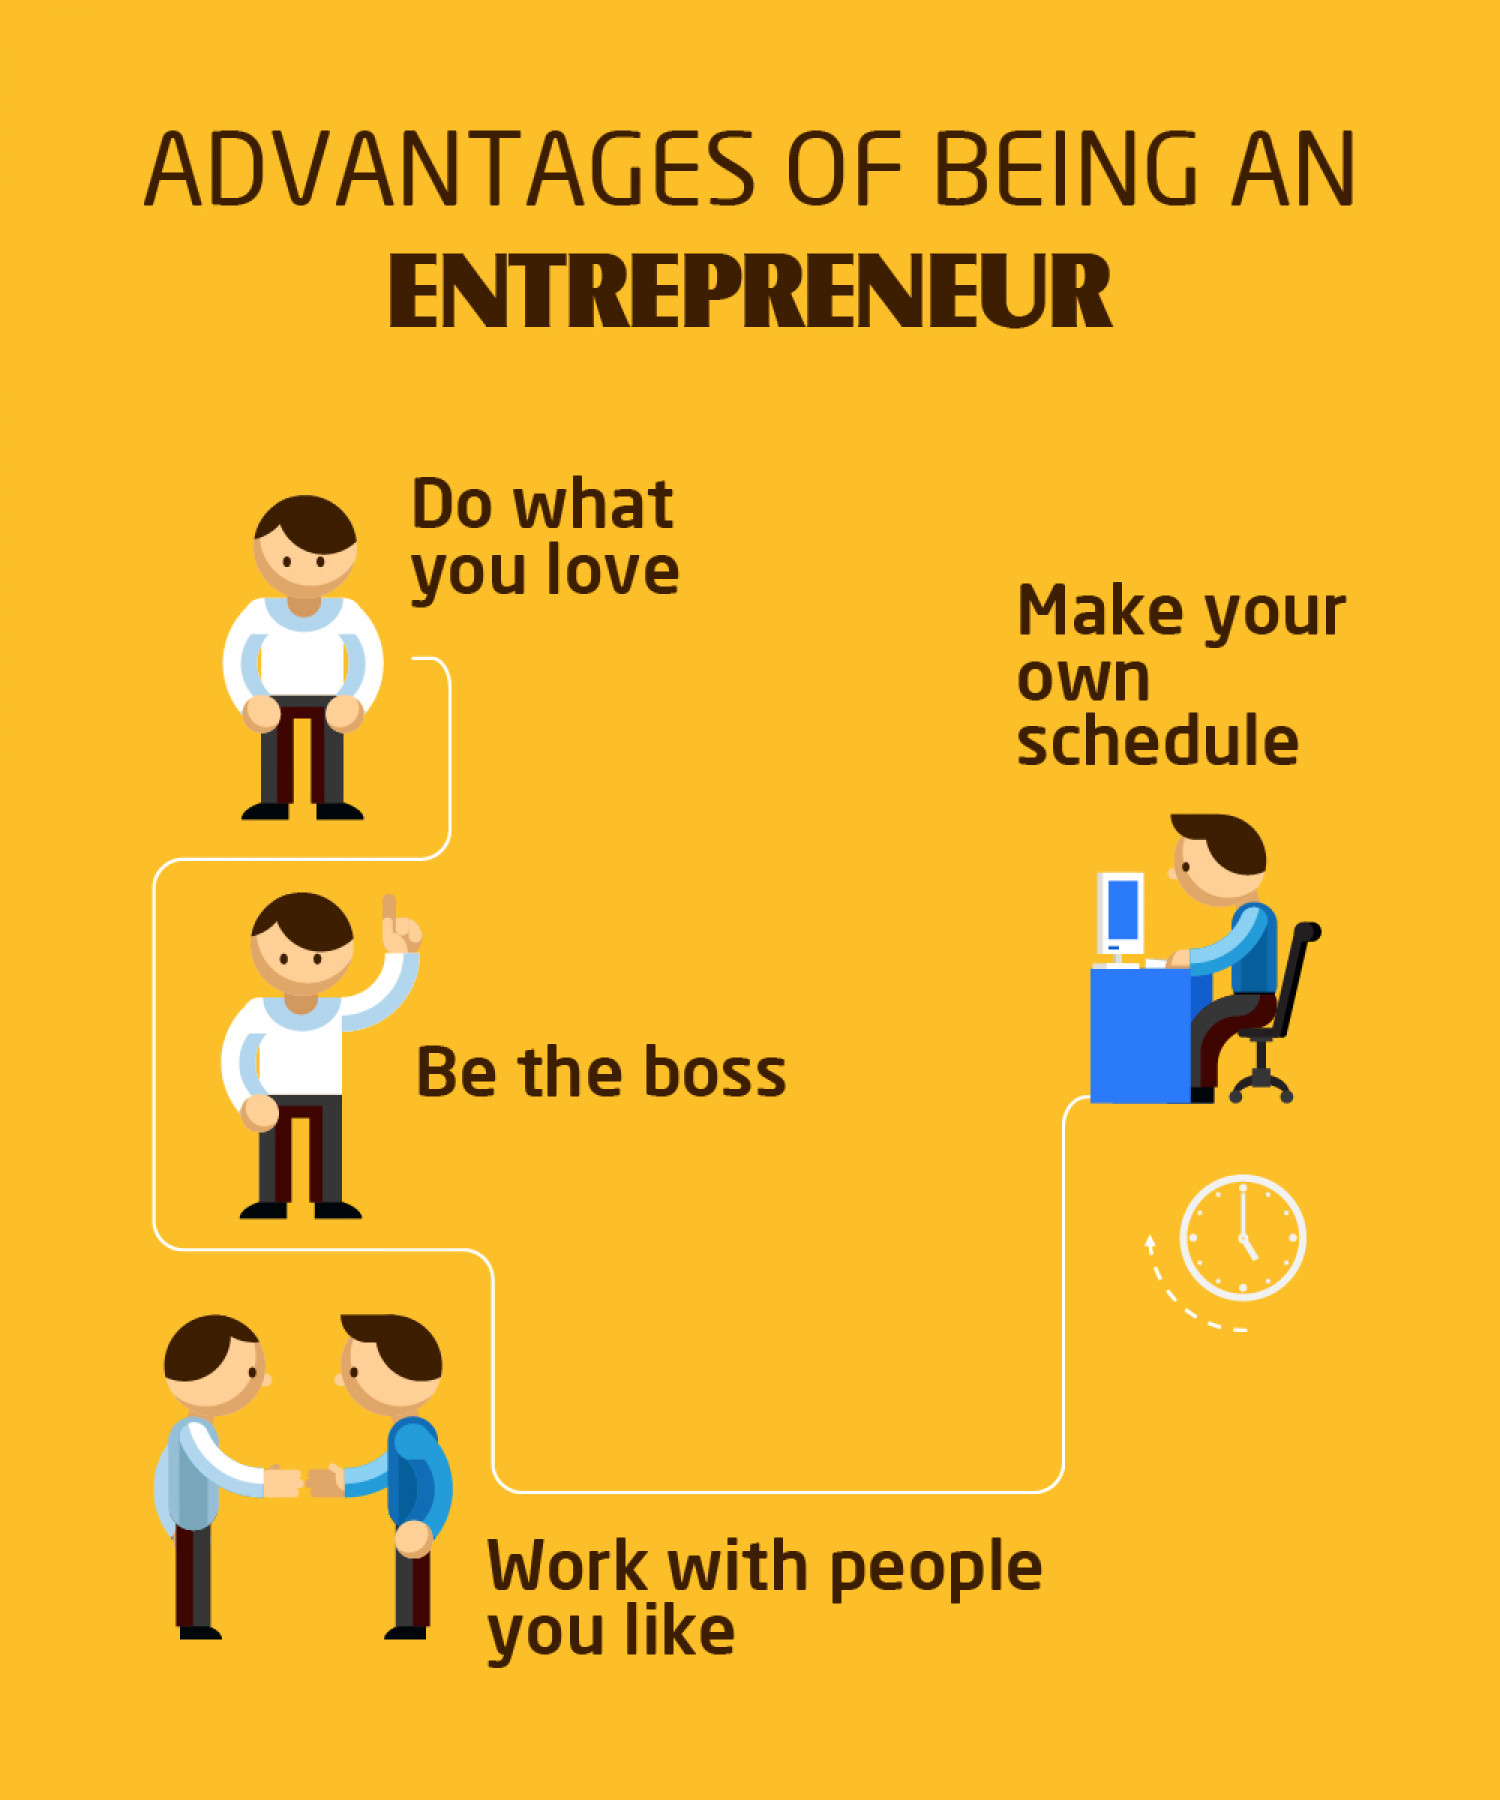 advantages of being an entrepreneur infographic - Being Your Own Boss Advantages And Disadvantages